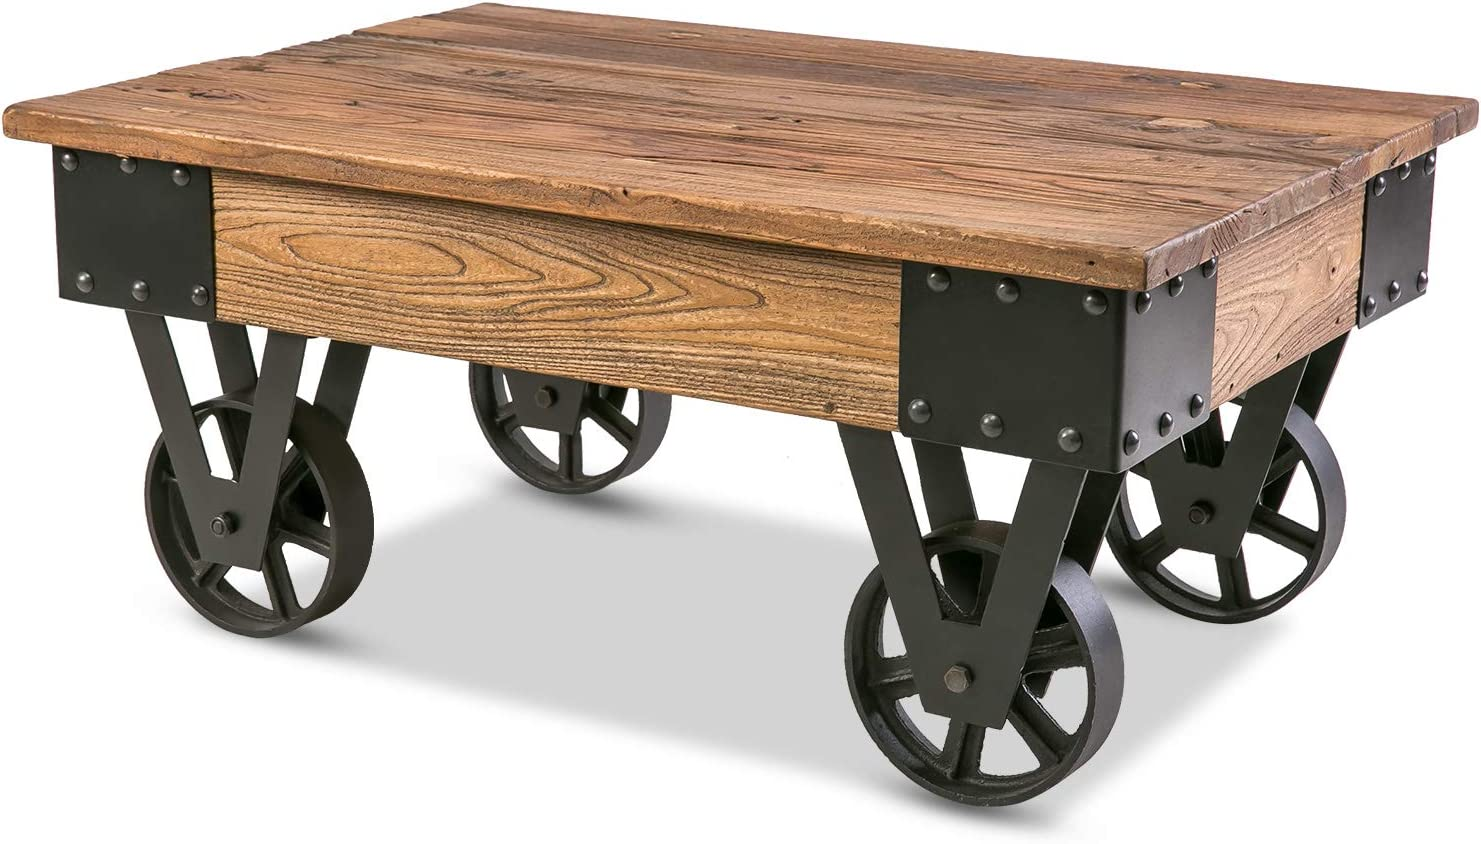 - Amazon.com: Rustic Country Coffee Table With Metal Wheels, TV